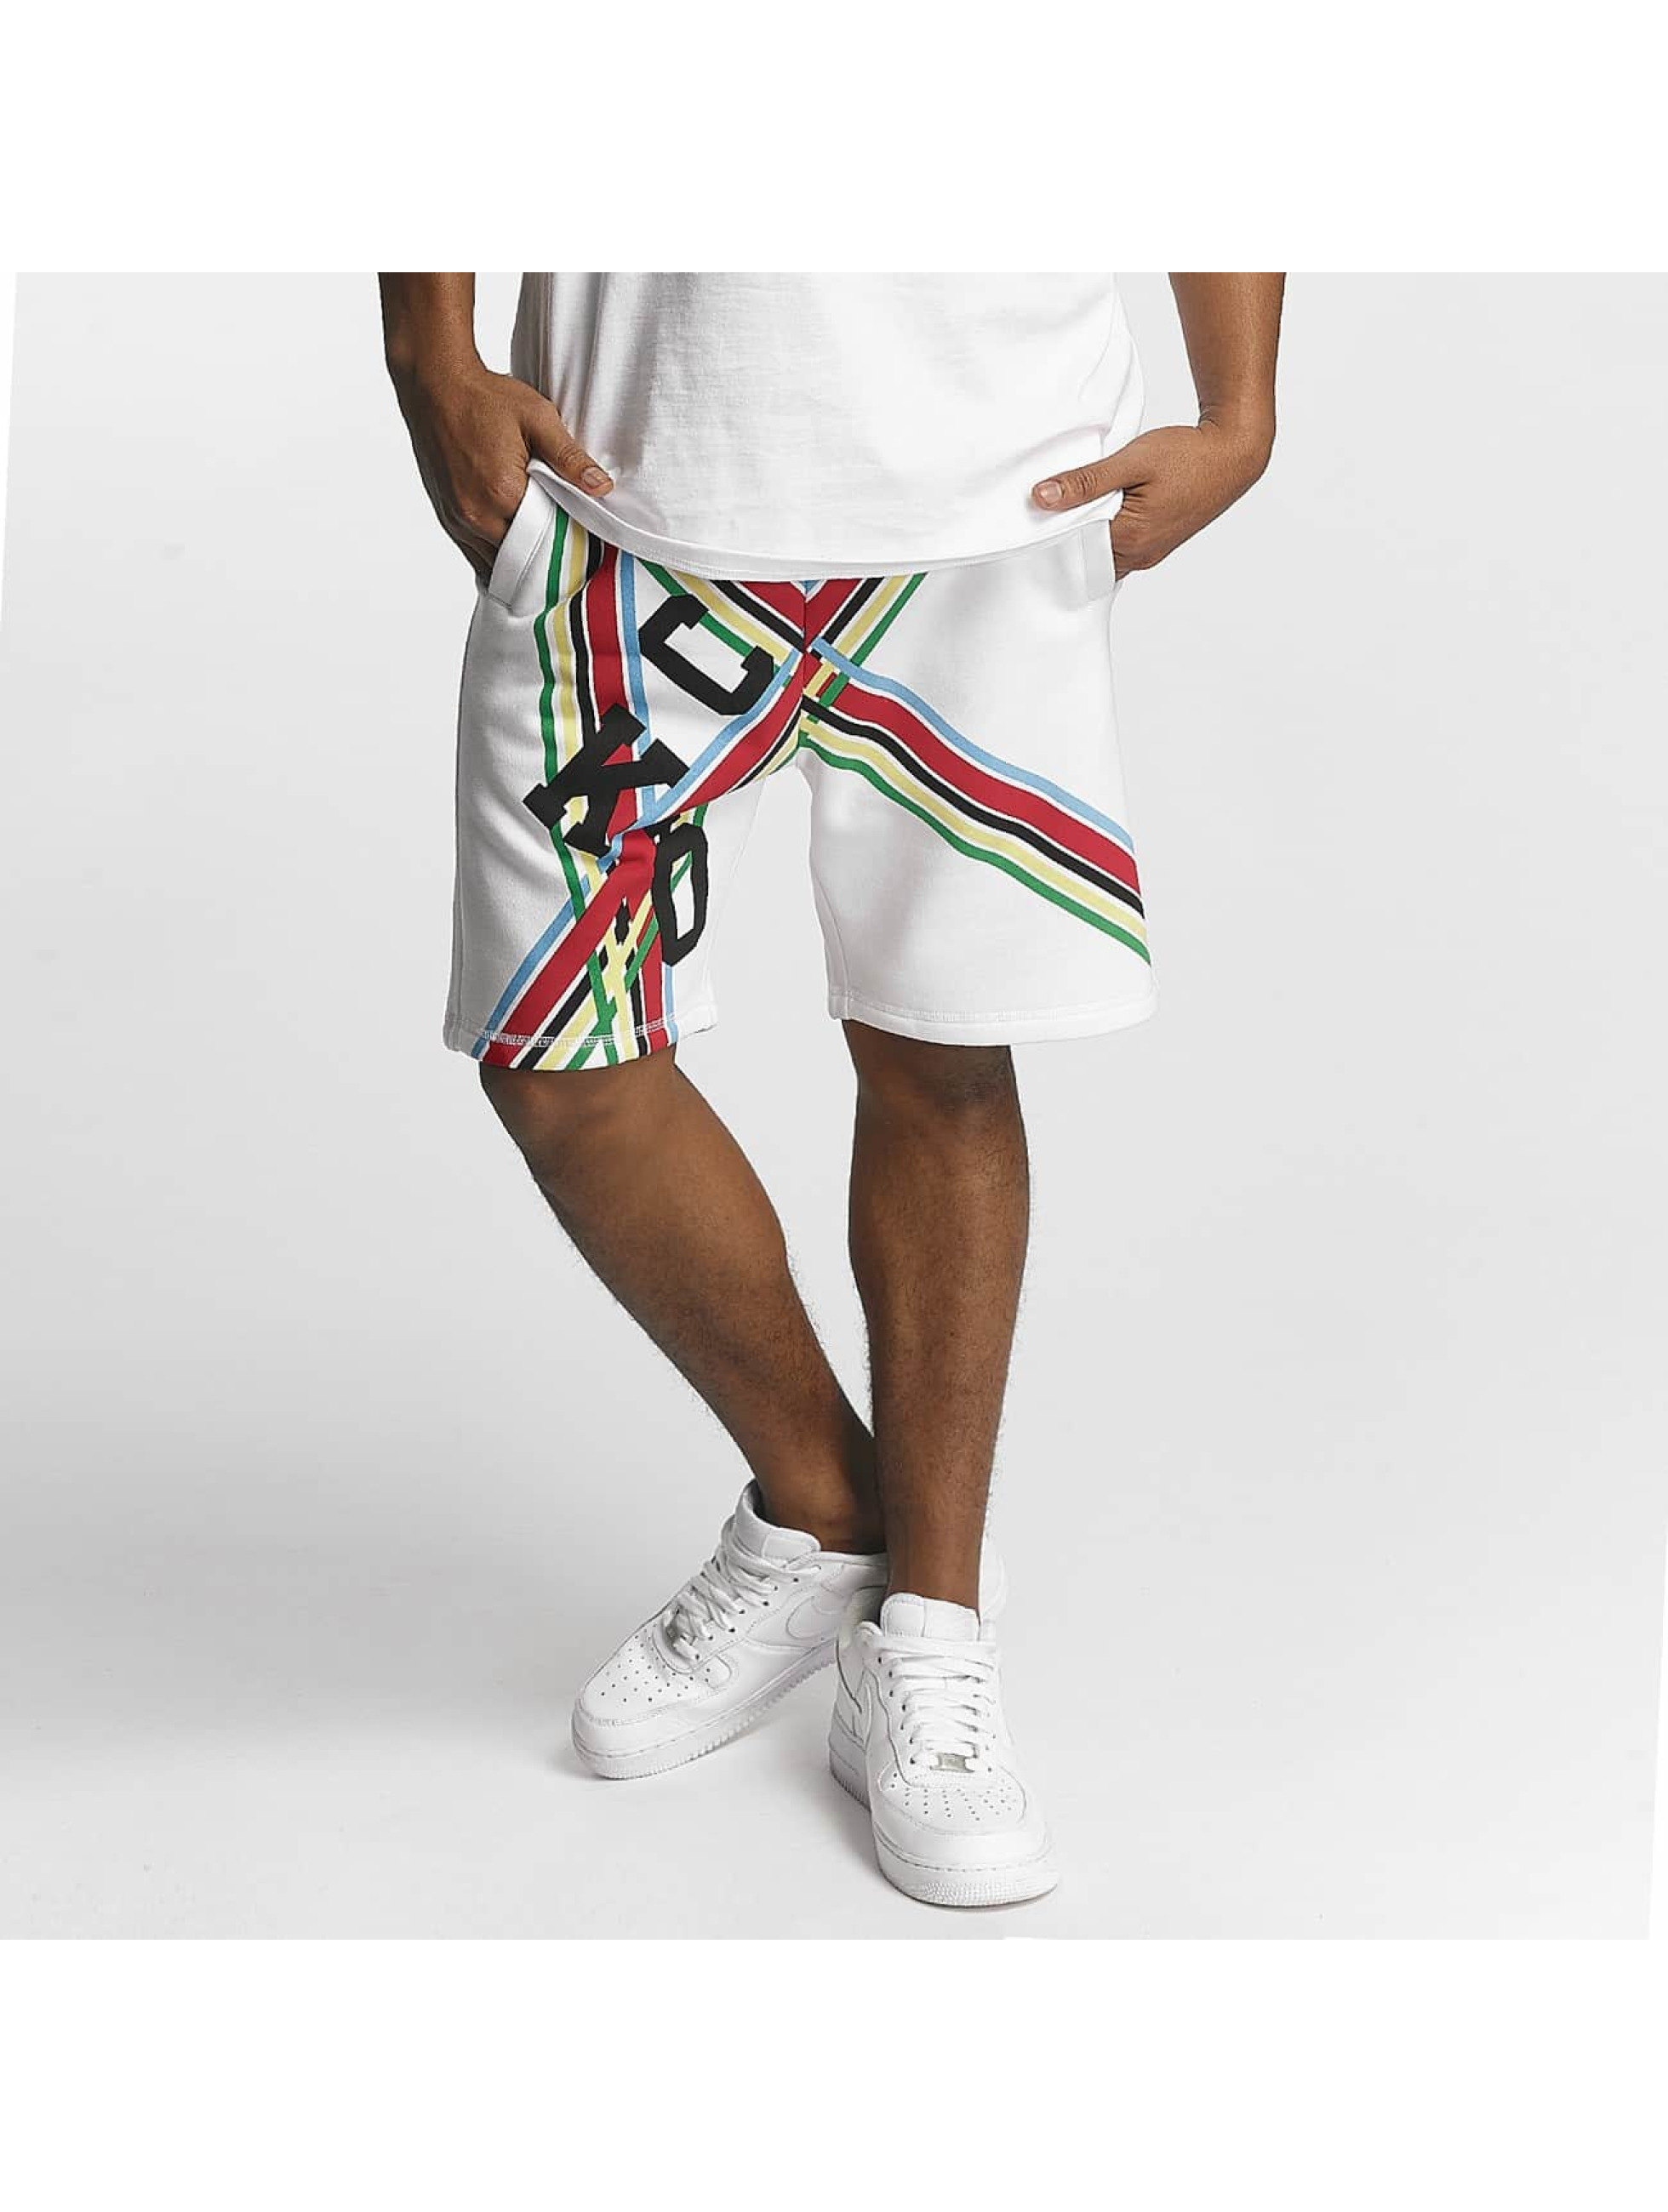 Ecko Unltd. / Short TourdÀfrique in white L